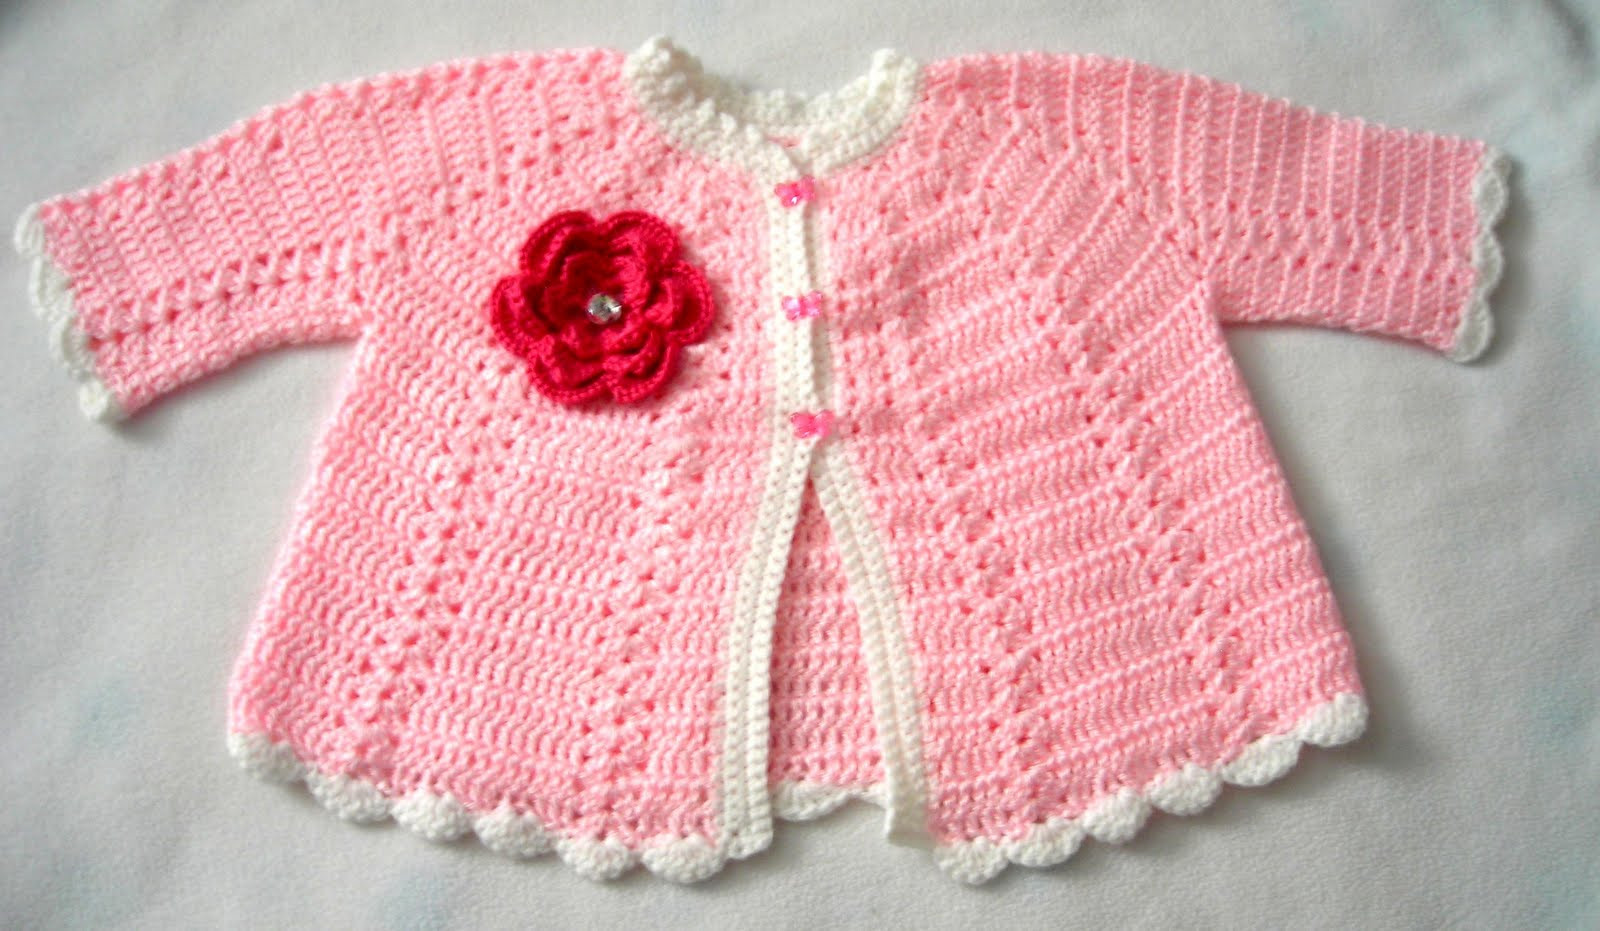 Crochet toddler Sweaters Unique Crafts and Crocheting Crocheted Baby Sweaters Of Attractive 46 Pictures Crochet toddler Sweaters